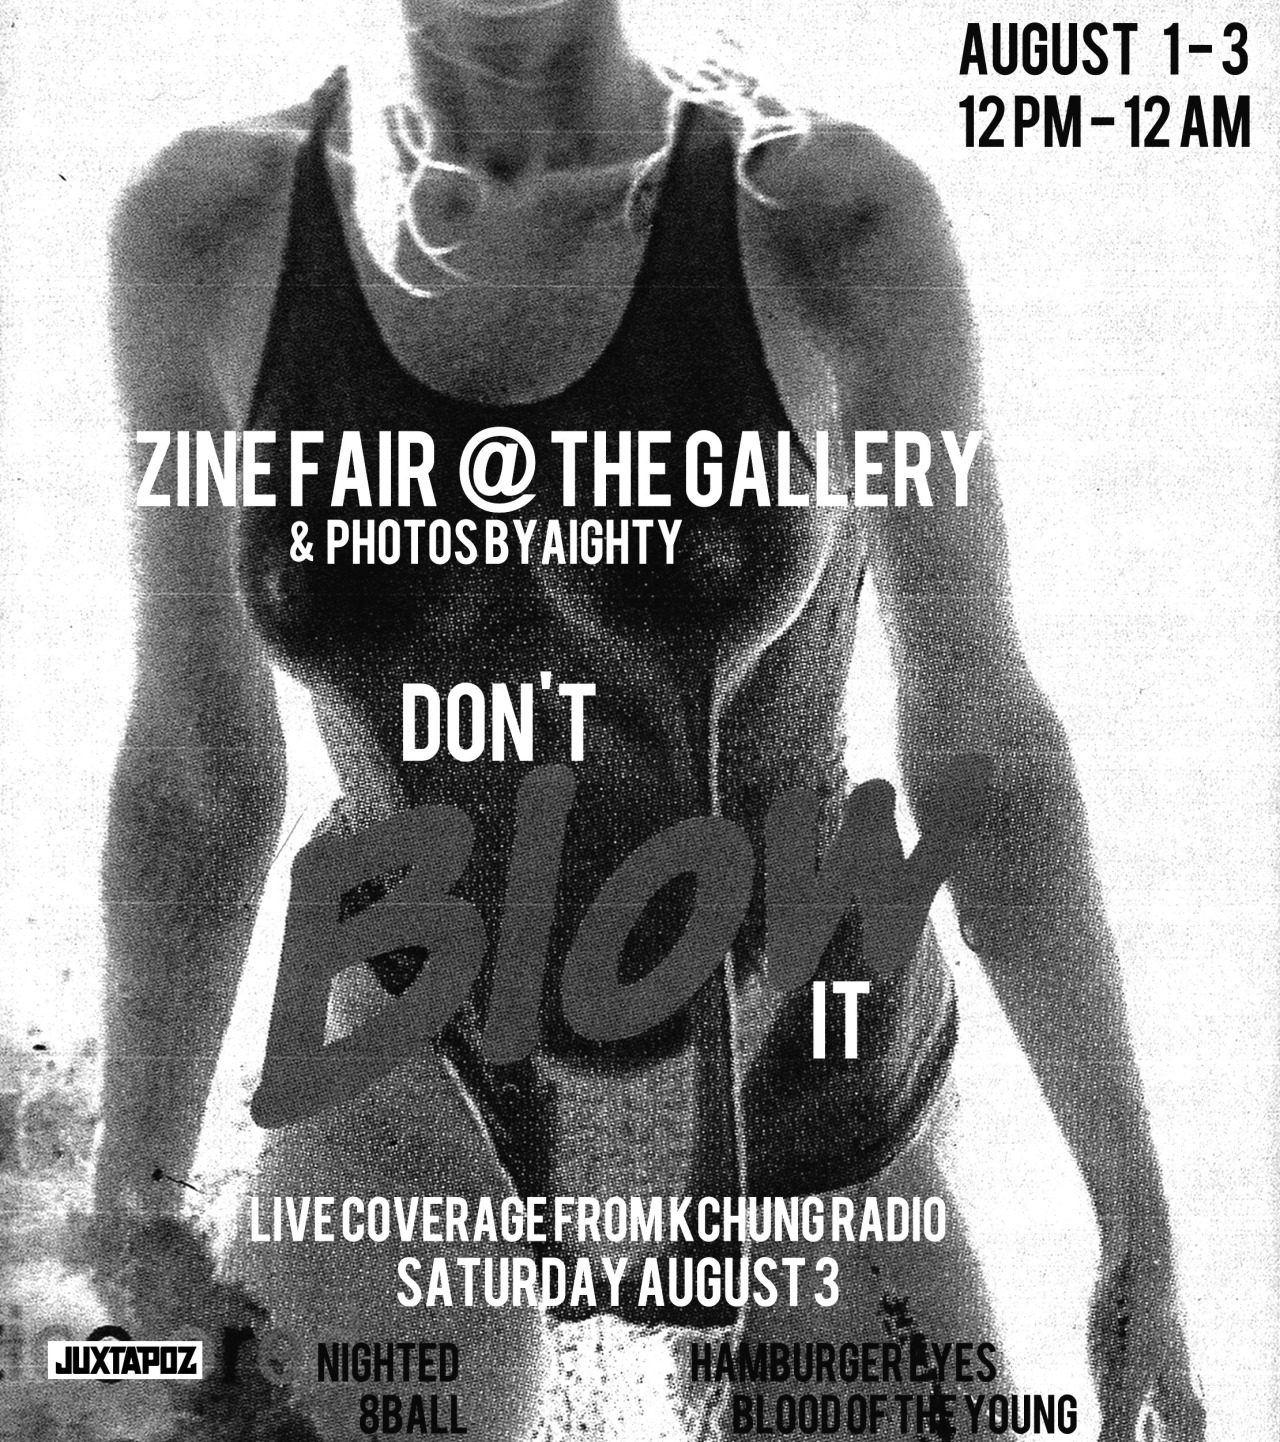 This zine fair kicks off tonight in LA! NIGHTED is in full effect, and AIGHTY has new photos up!   madisoneast :     PARTY STARTS AUGUST 1 @ 8PM